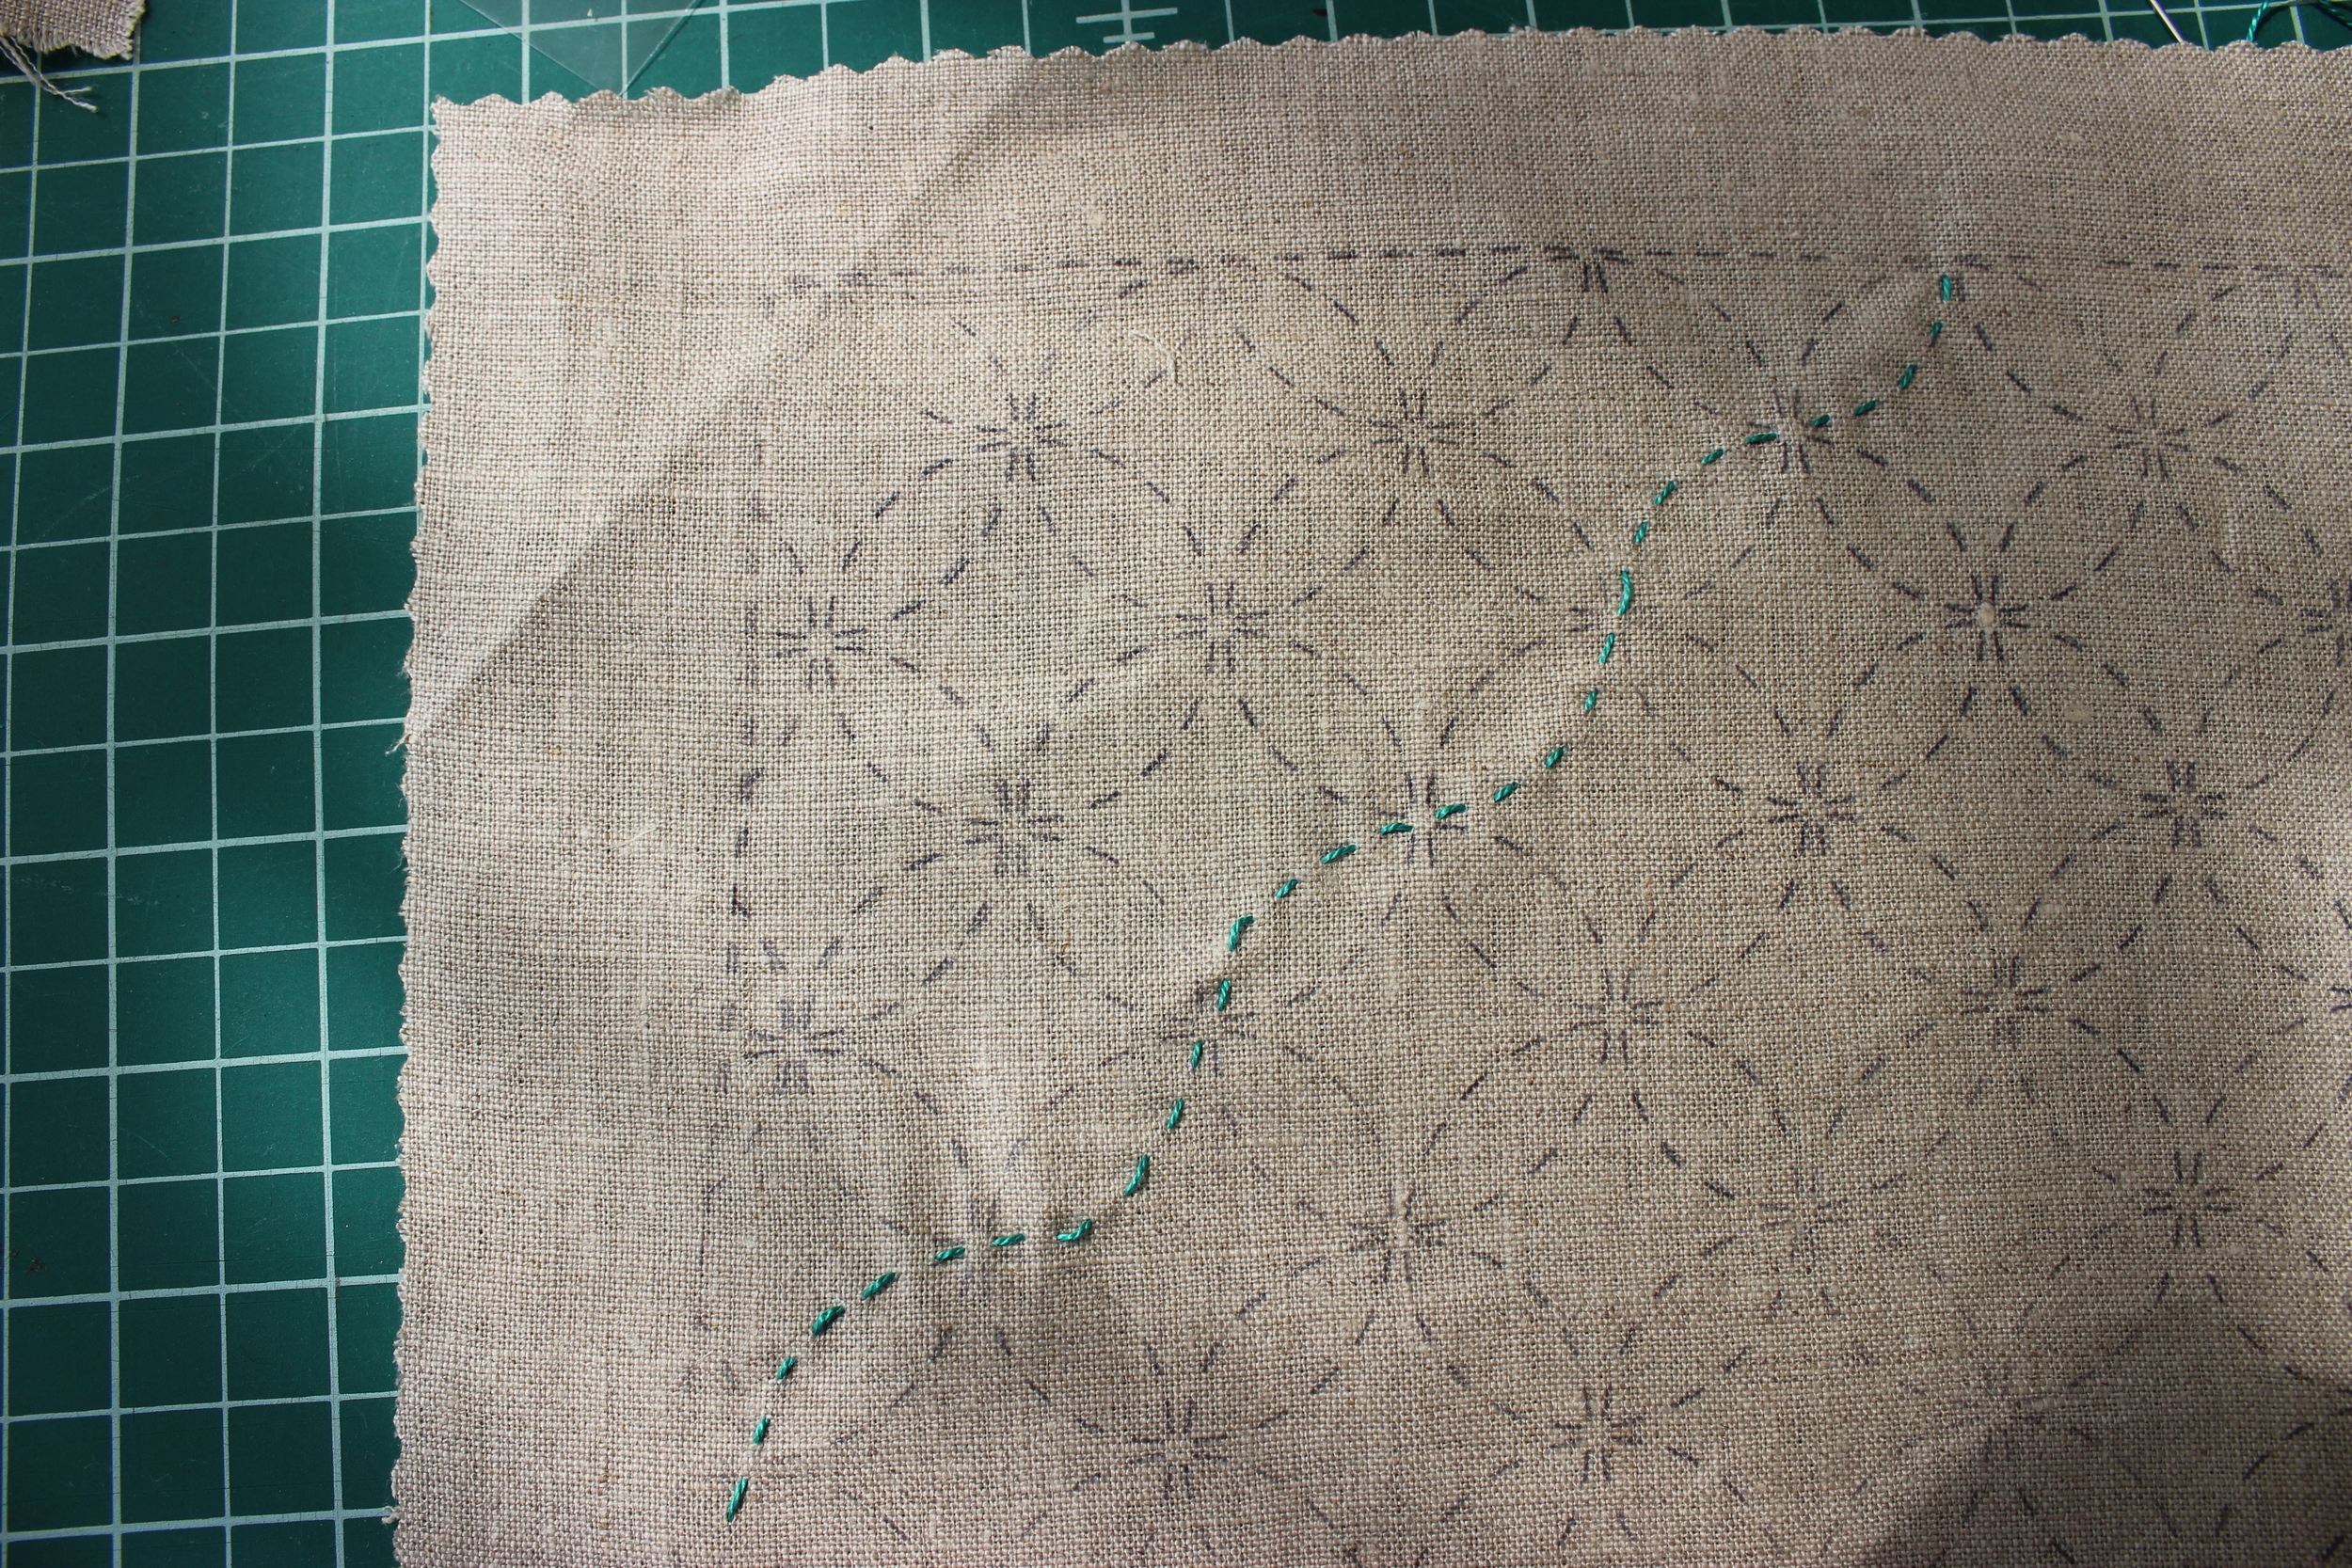 Here's a photo of our hoops and loops pattern in progress. This pattern was stamped on natural linen fabric, but we find light-colored cotton takes the ink much more easily.